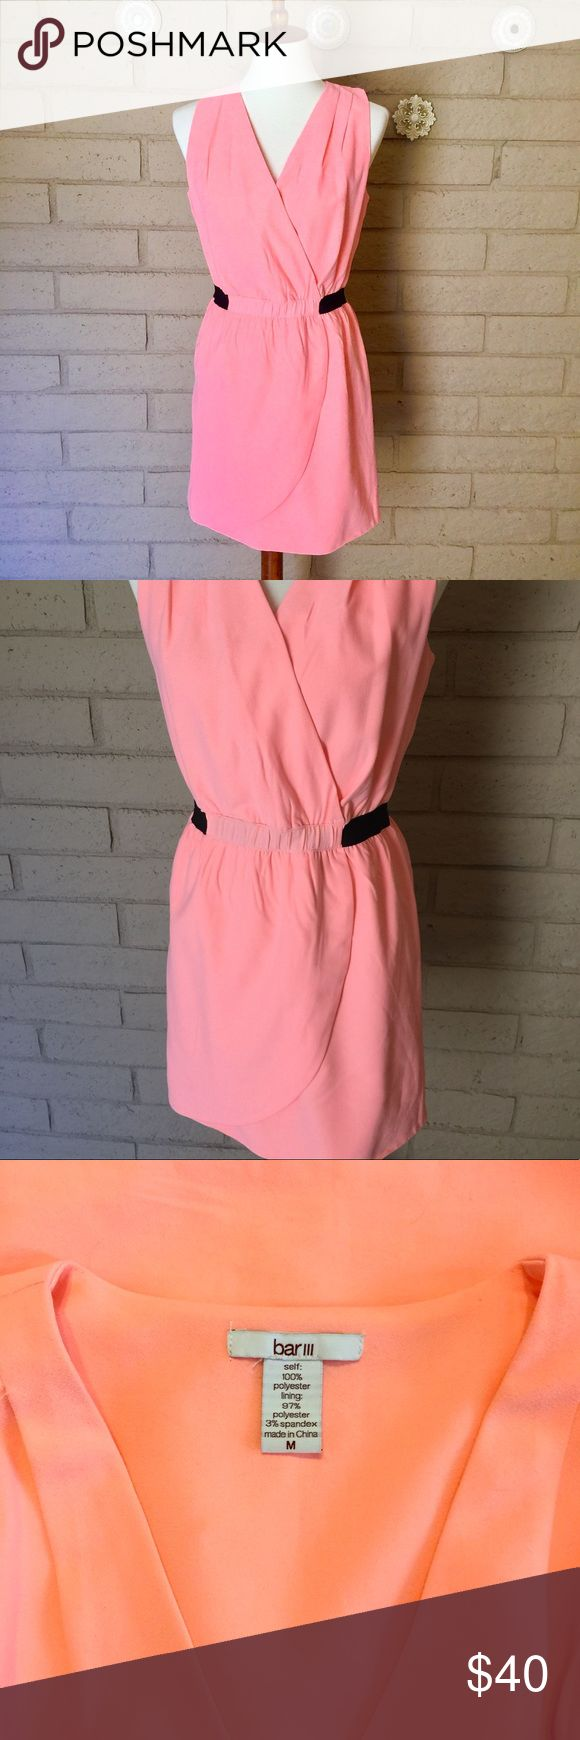 Bar III Neon Mini Dress Bar III Tank dress in neon peach color - much brighter in person! Black waist band, illusion wrap draping Size M Pre-loved with minimal signs of wear. No stains, rips or other flaws! Bar III Dresses